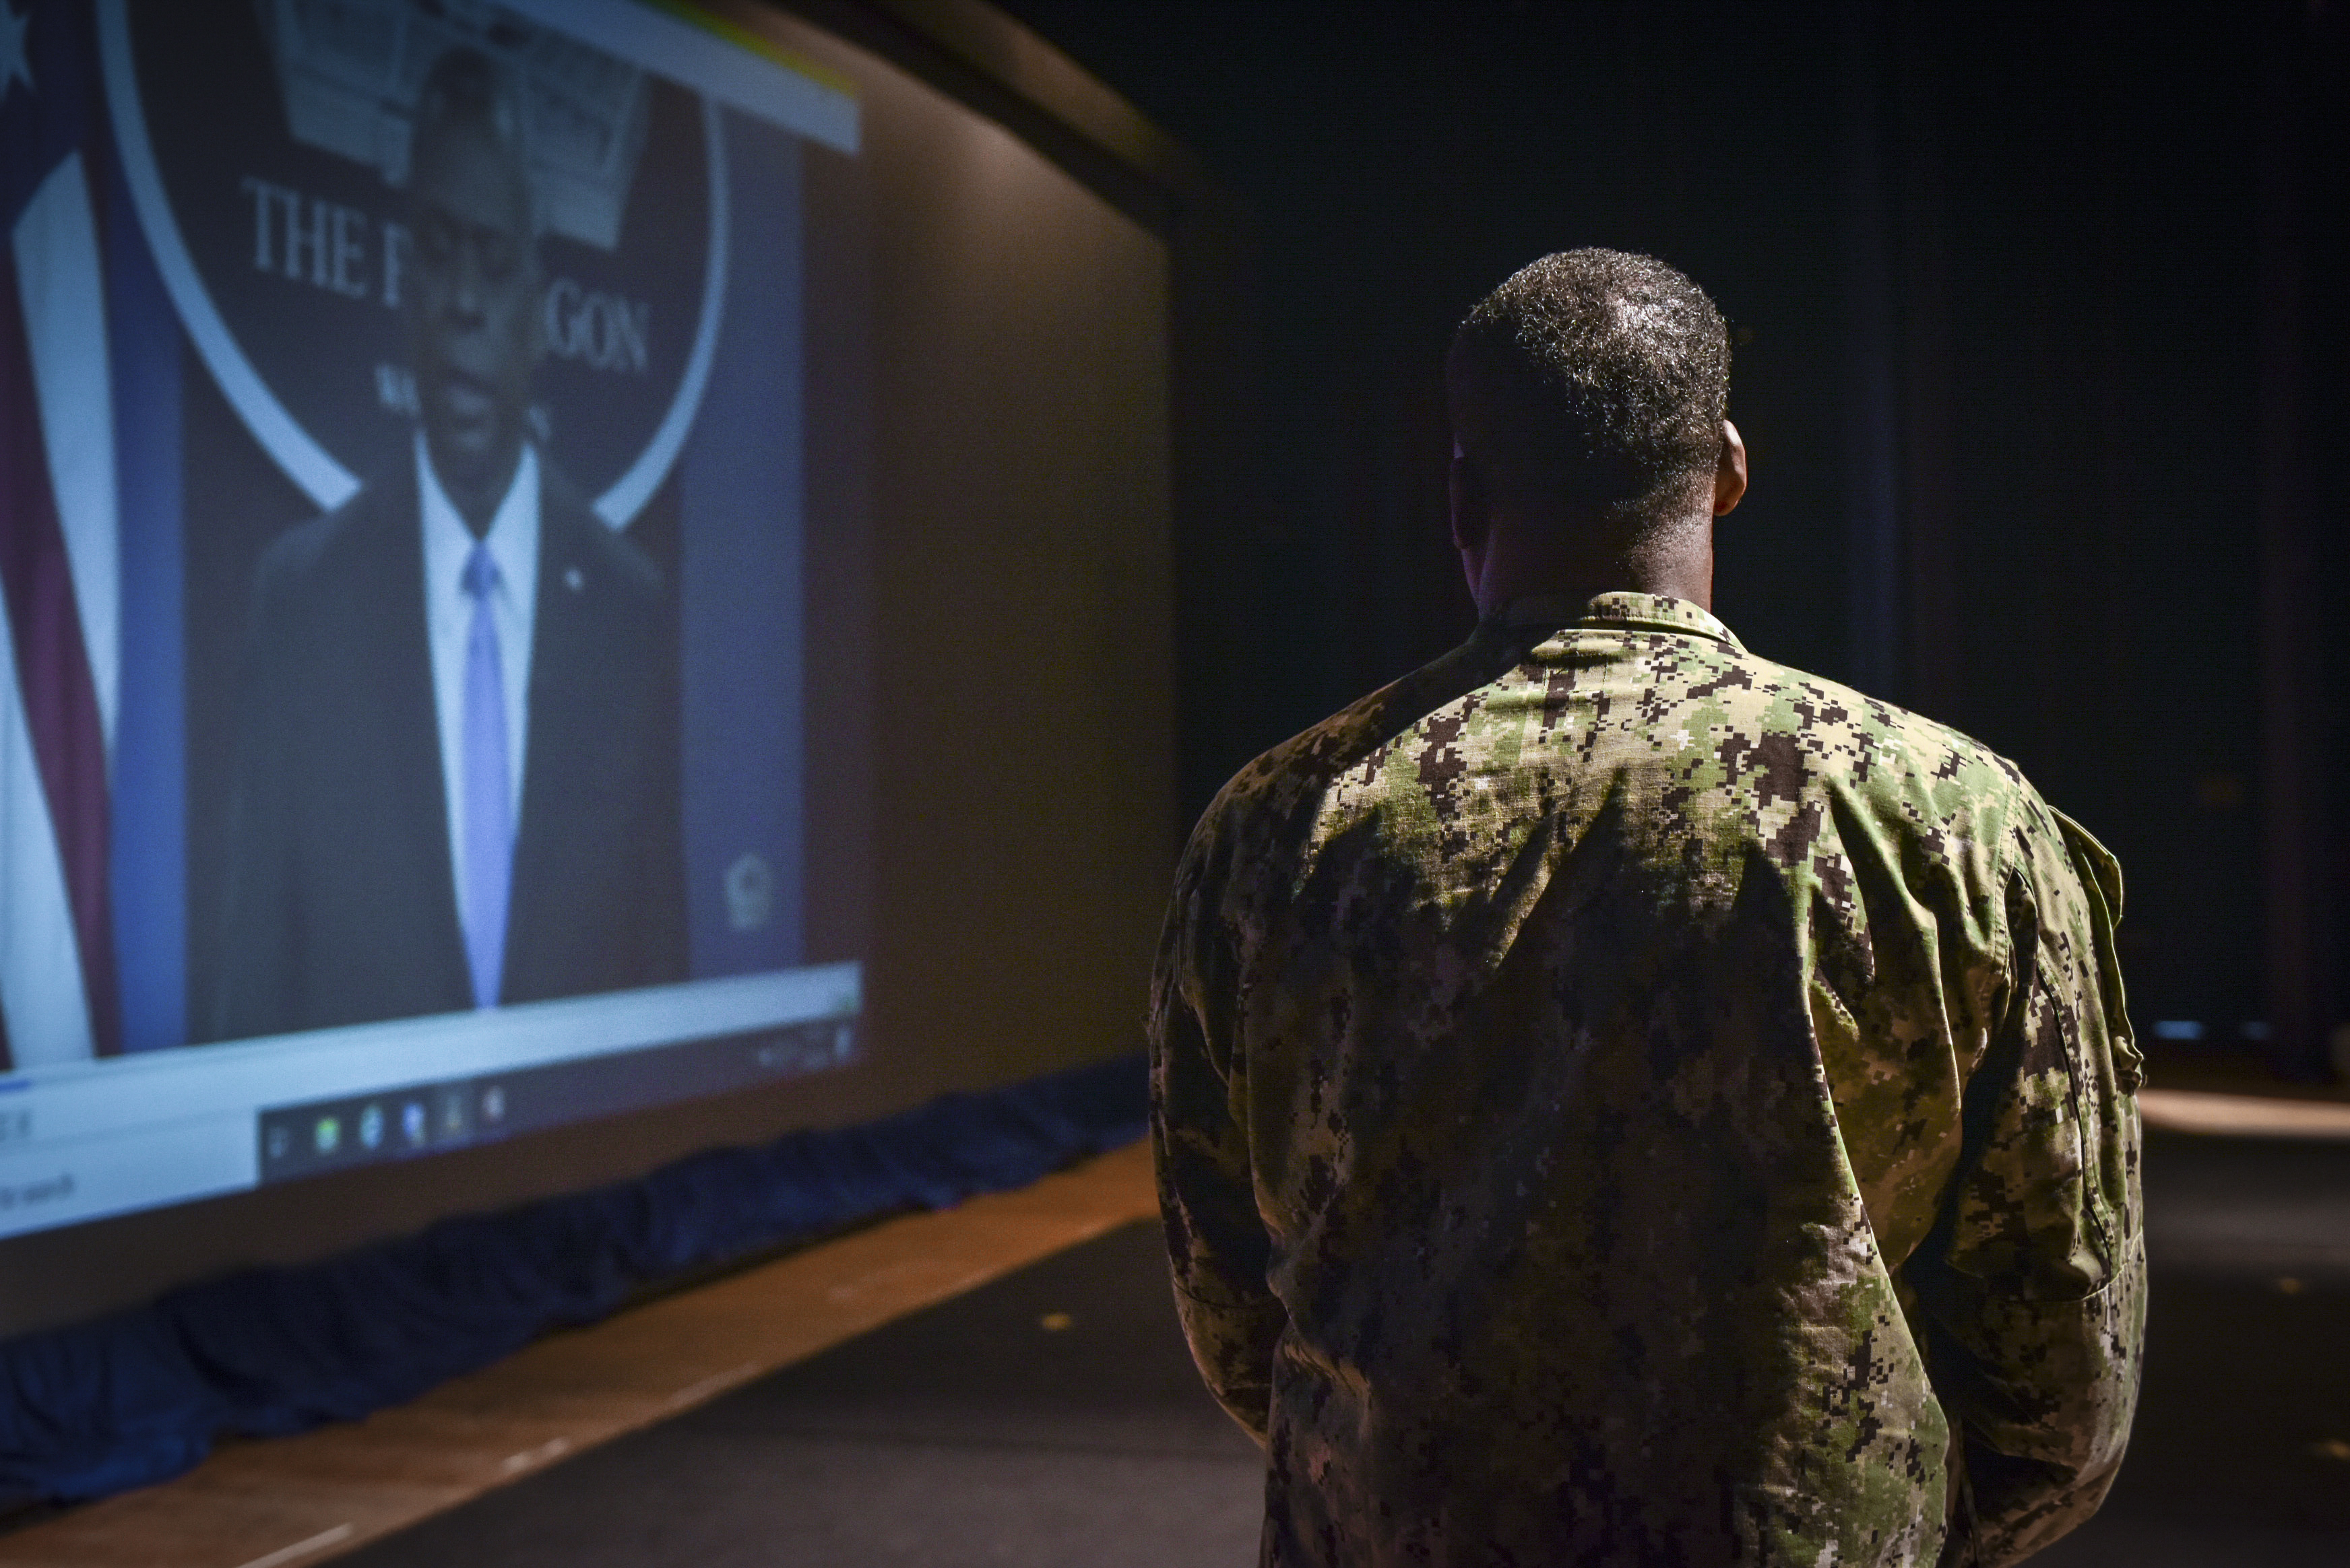 VIRGINIA BEACH, Va. (March 1, 2021) Capt. Michael Witherspoon watches a video of Secretary of Defense Lloyd Austin address extremism within the U.S. military during a mandated stand-down, March 1. The SECDEF directed commanding officers and supervisors at all levels to conduct a stand-down with their personnel to address extremism by April 6, 2021. (U.S. Navy photo by Travis J. Kuykendall/Released)